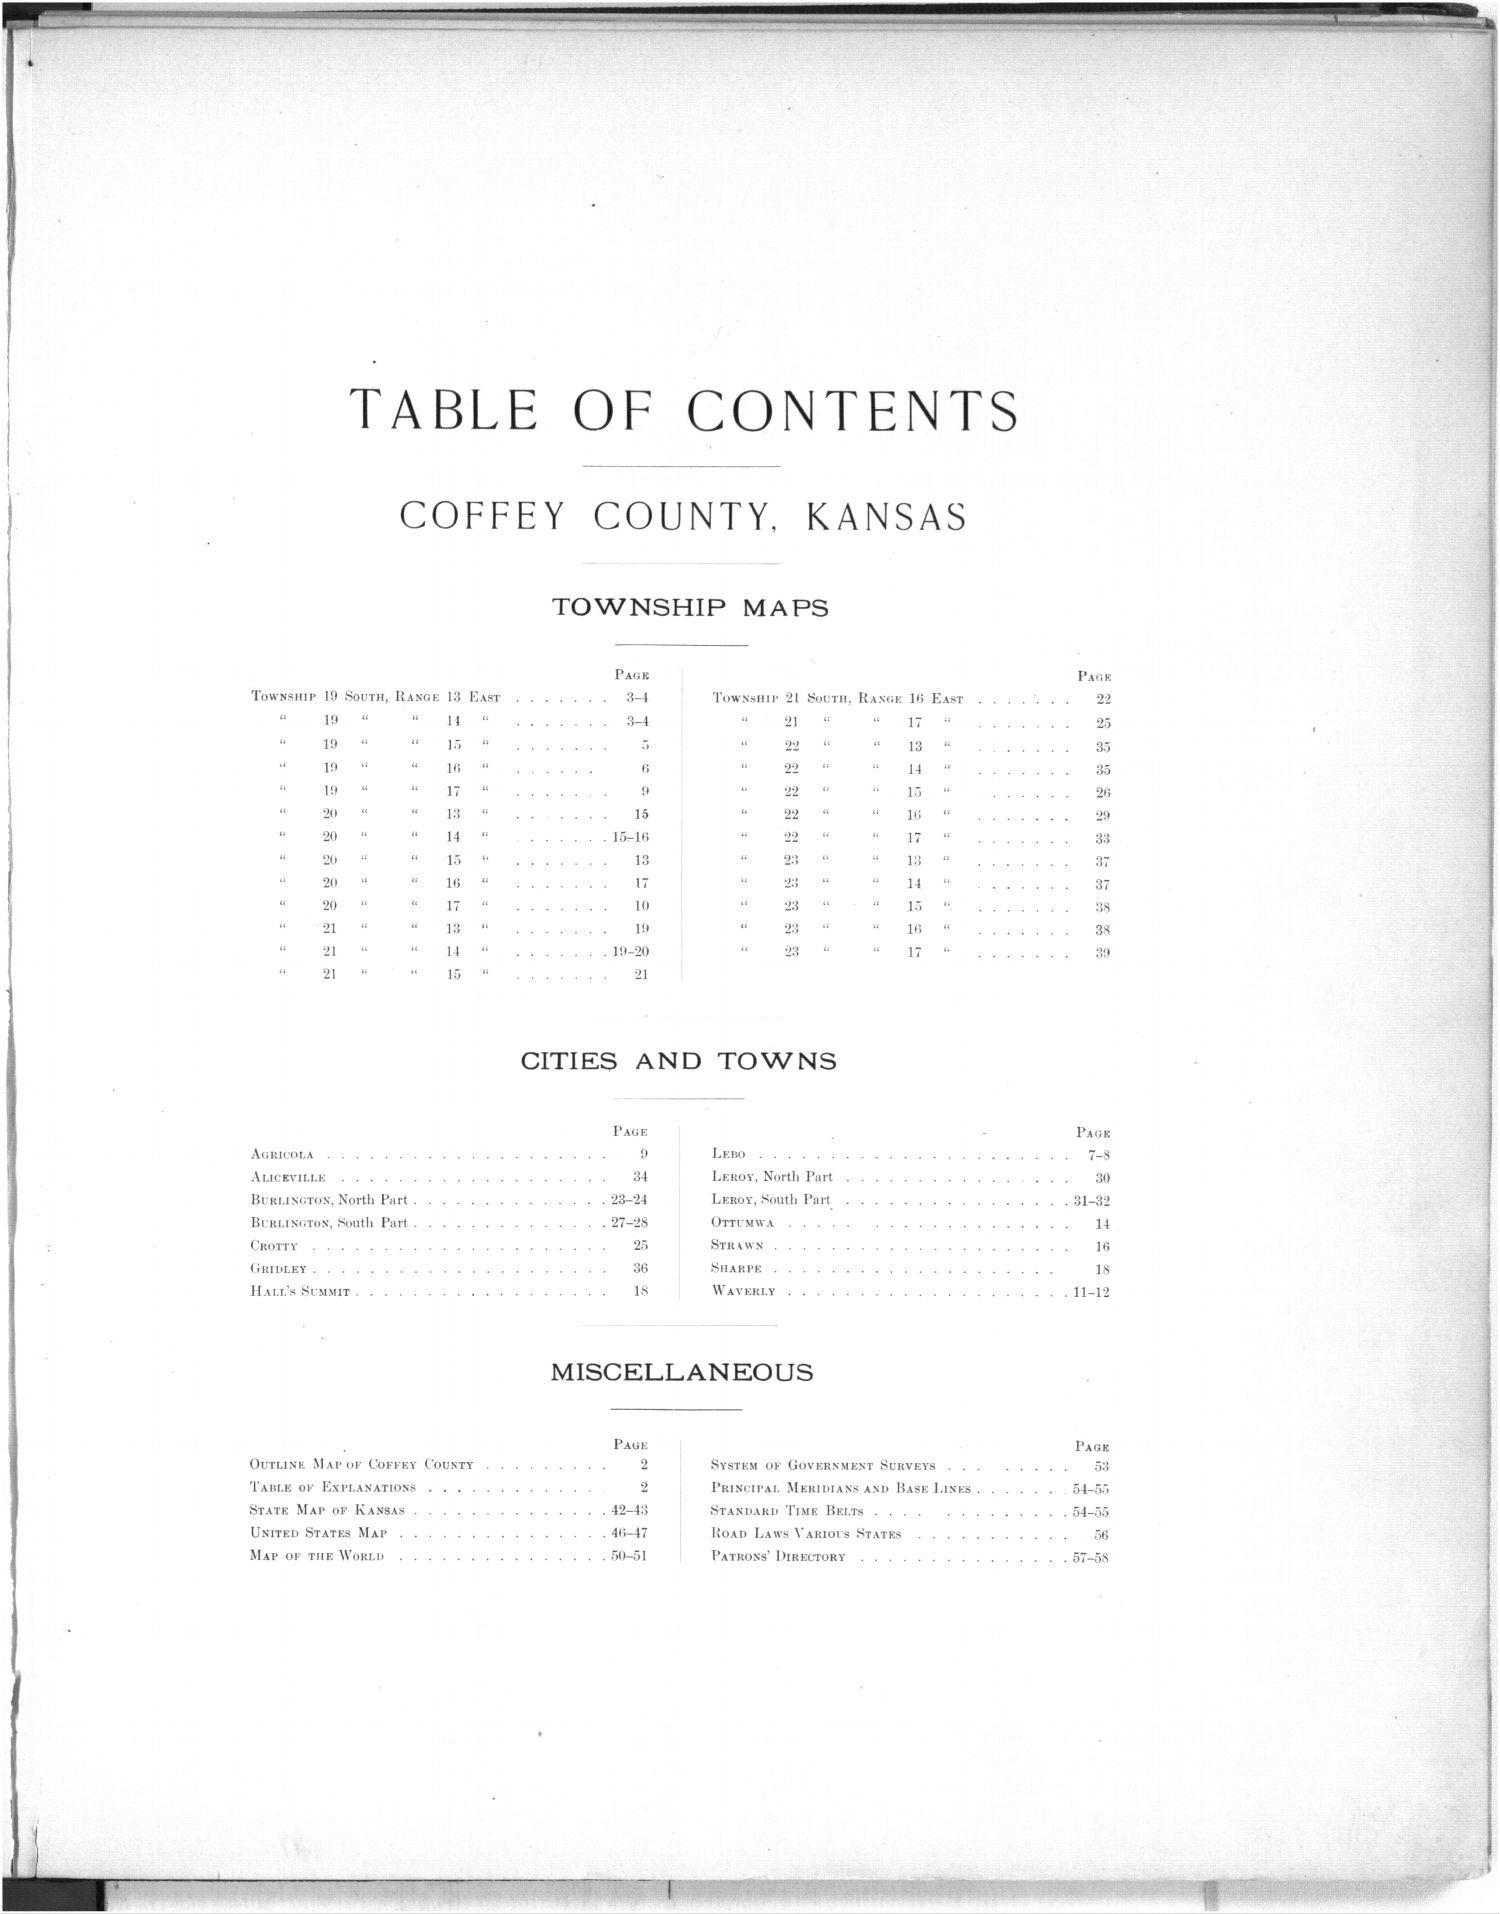 Plat book, Coffey County, Kansas - Table of Contents